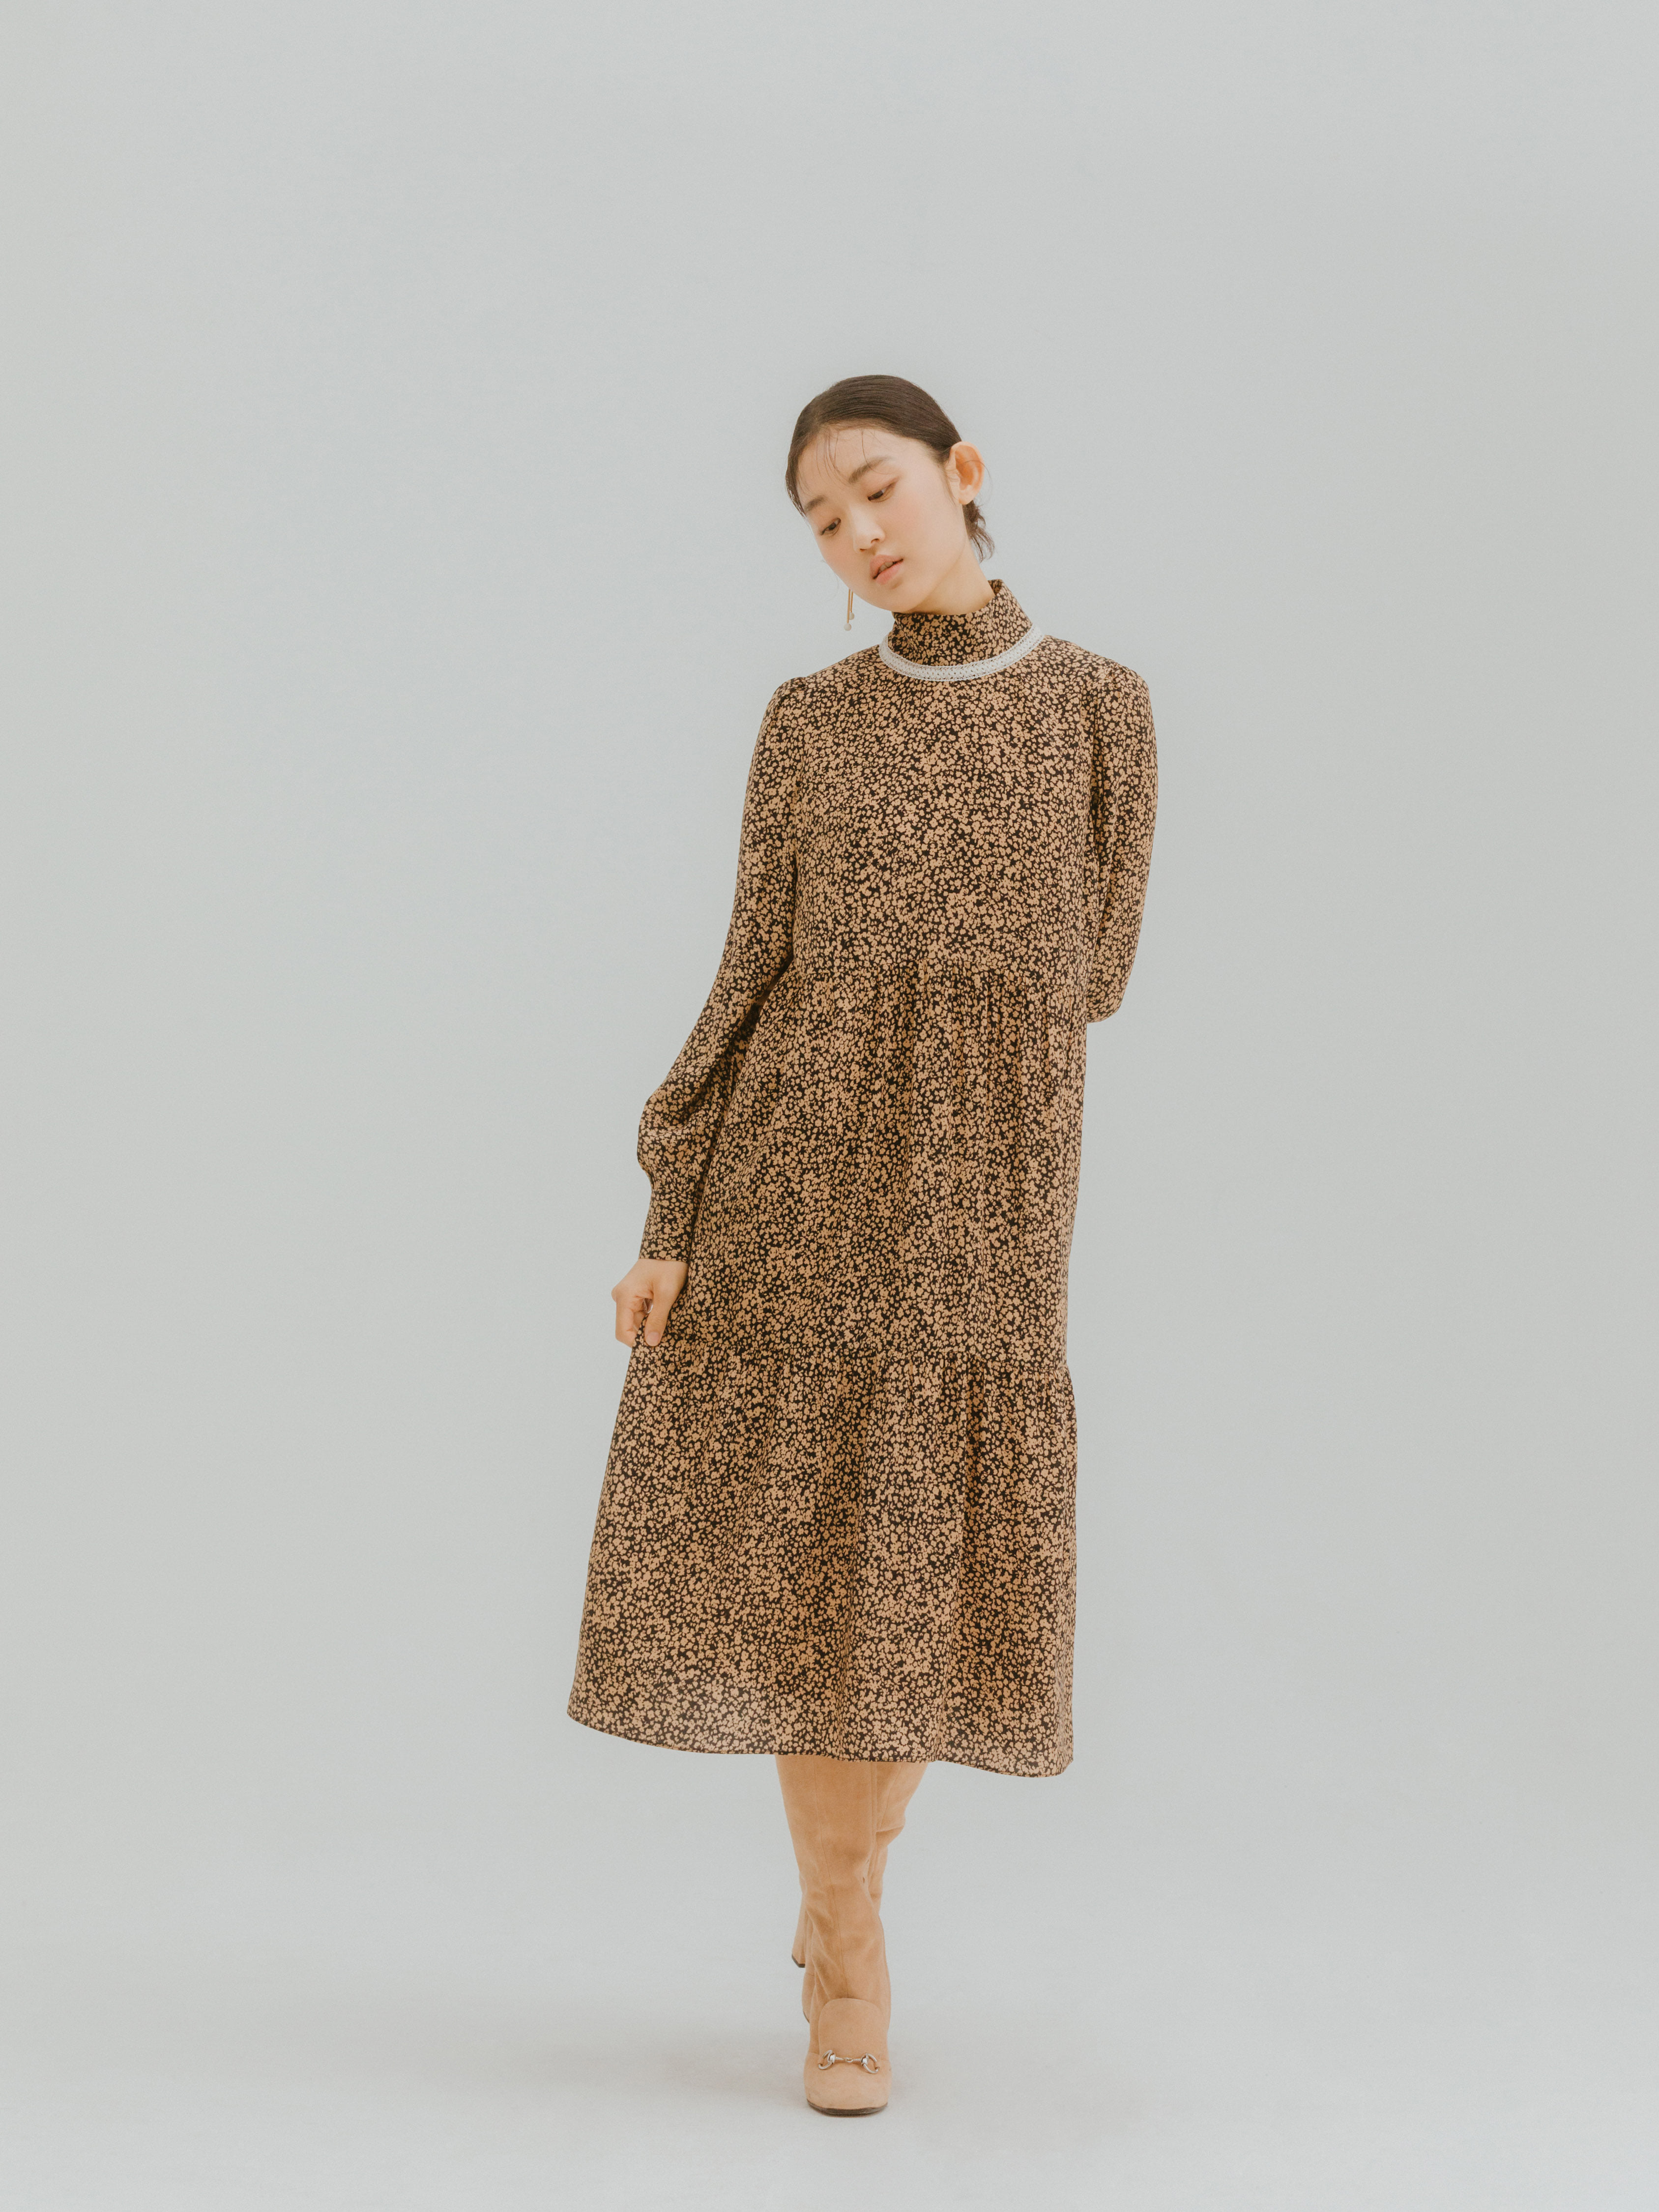 Jelsi dress(Brown) 2차 입고